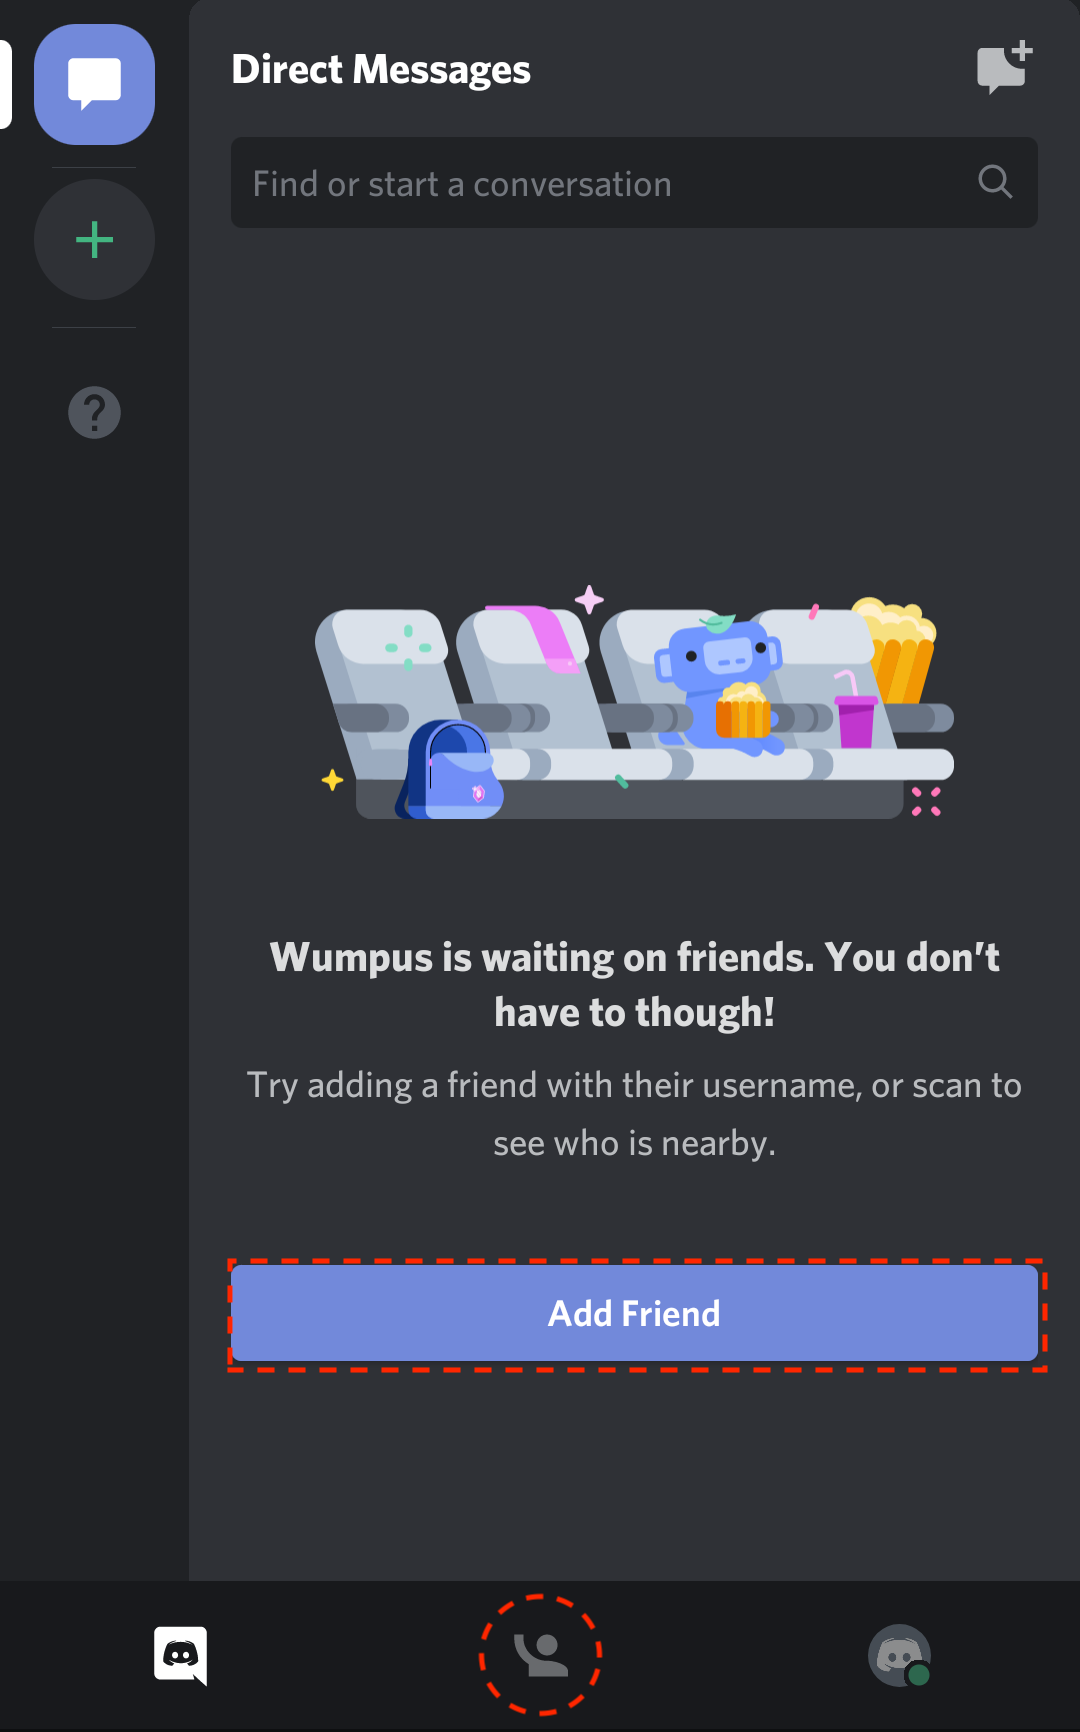 Adding_a_friend_direct_message_screen.png